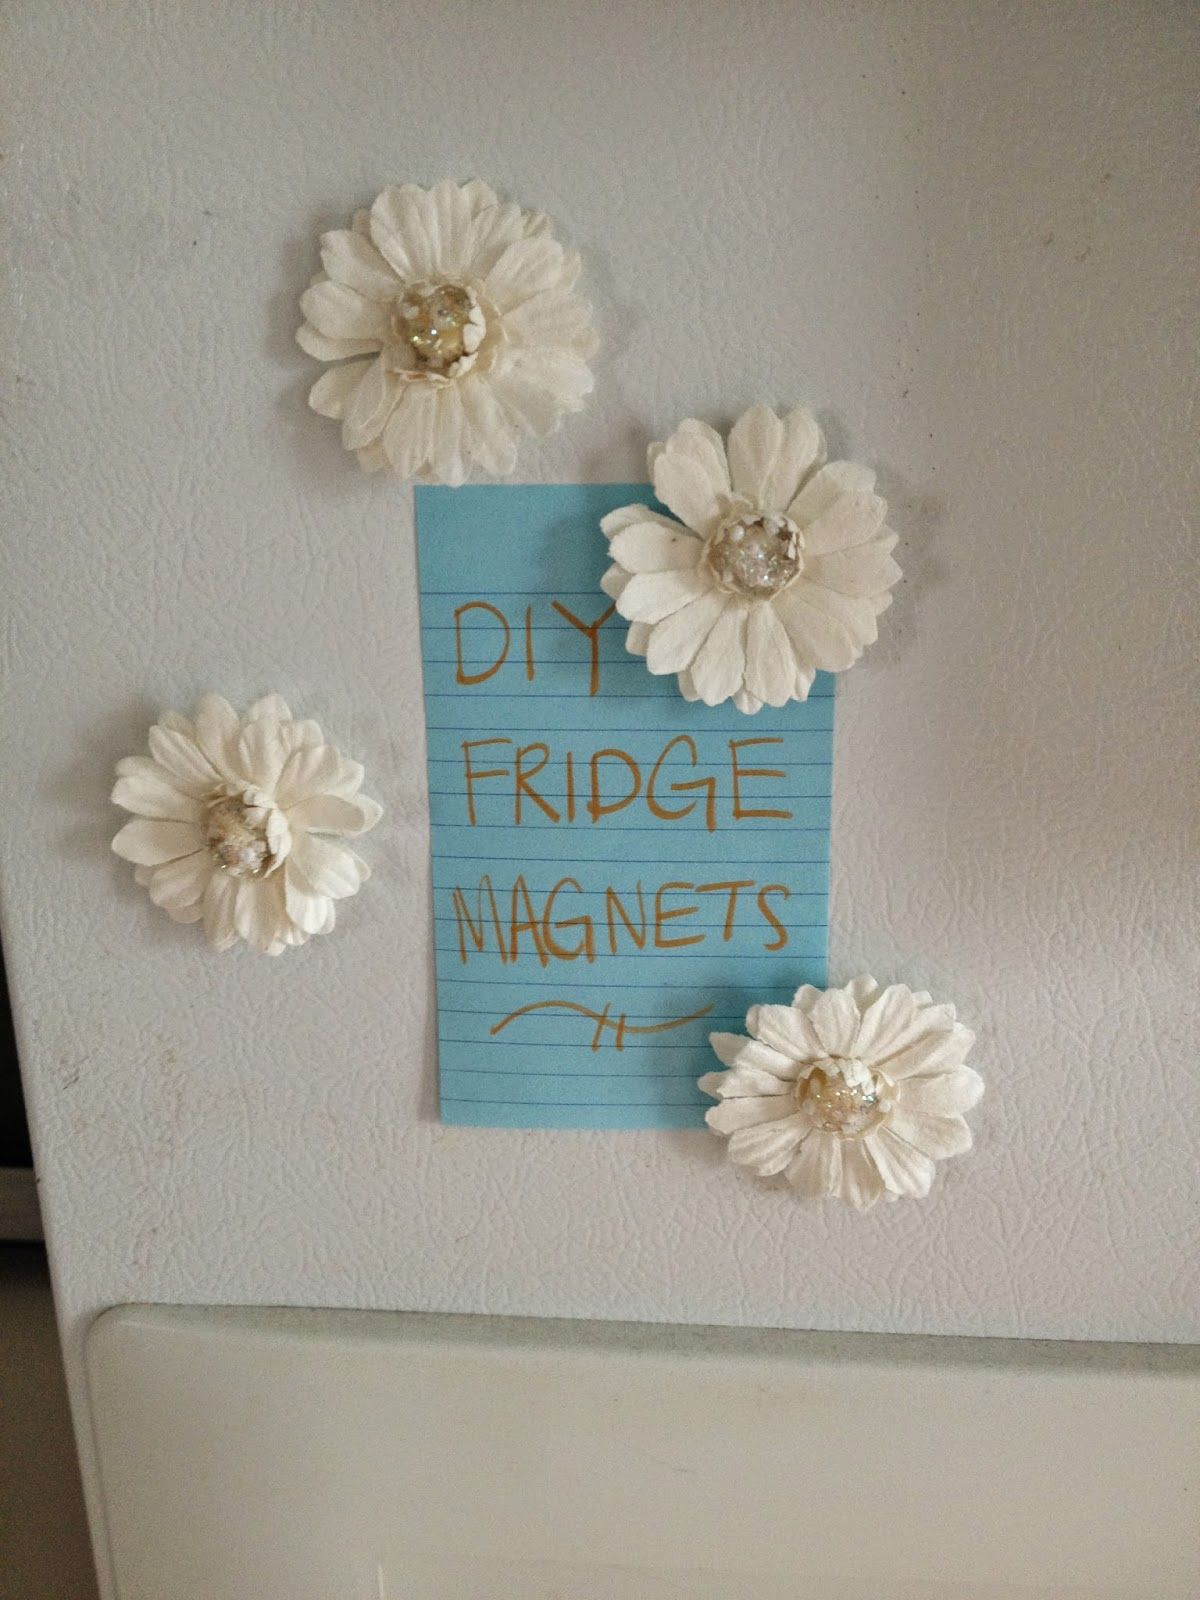 Apartment Decor DIY Fridge Magnets Apartment Pinterest - Diy apartment decor ideas